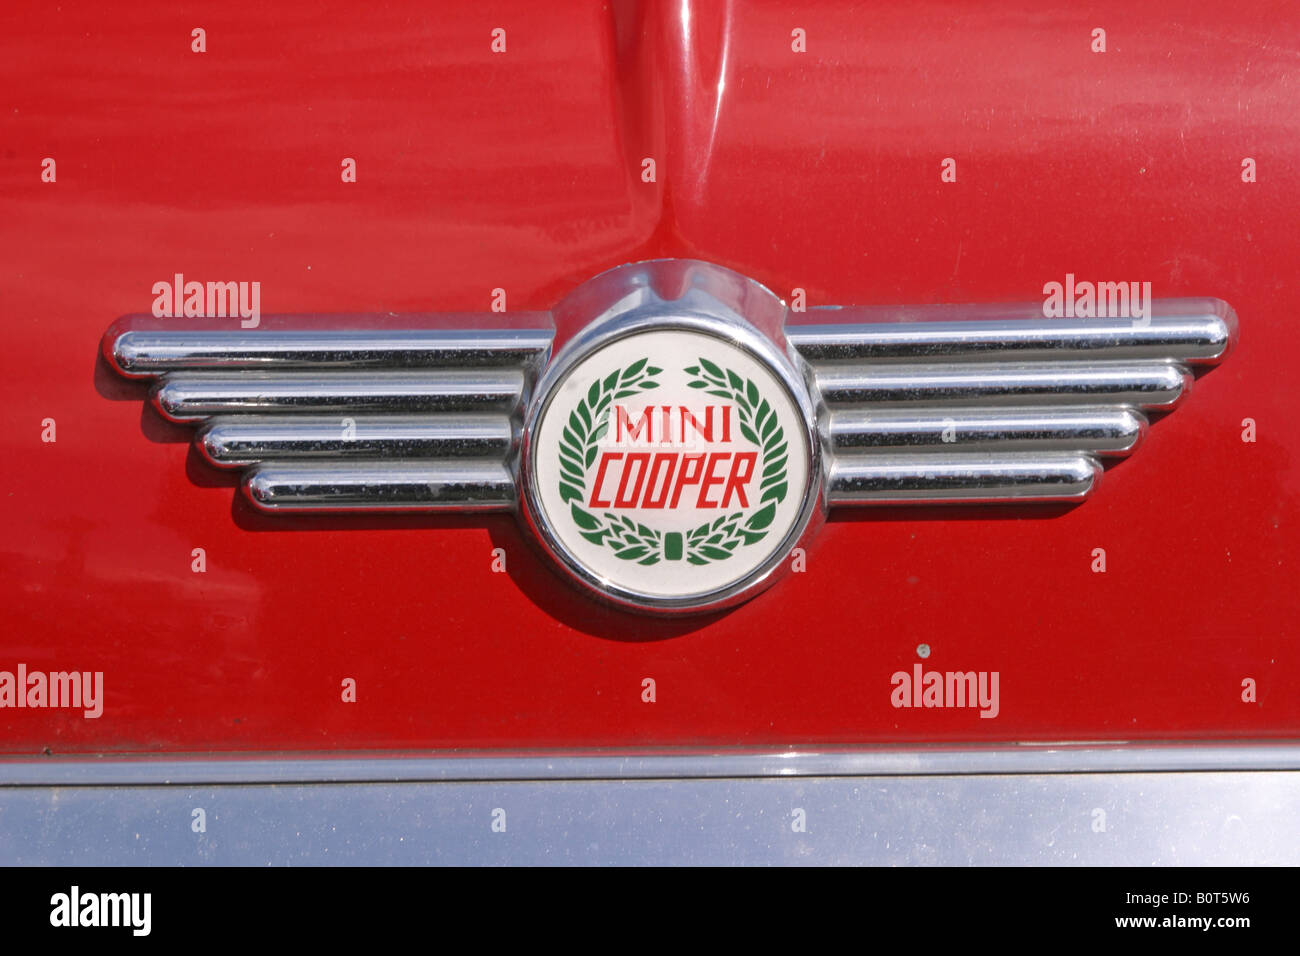 Mini Cooper Bonnet Badge - Stock Image